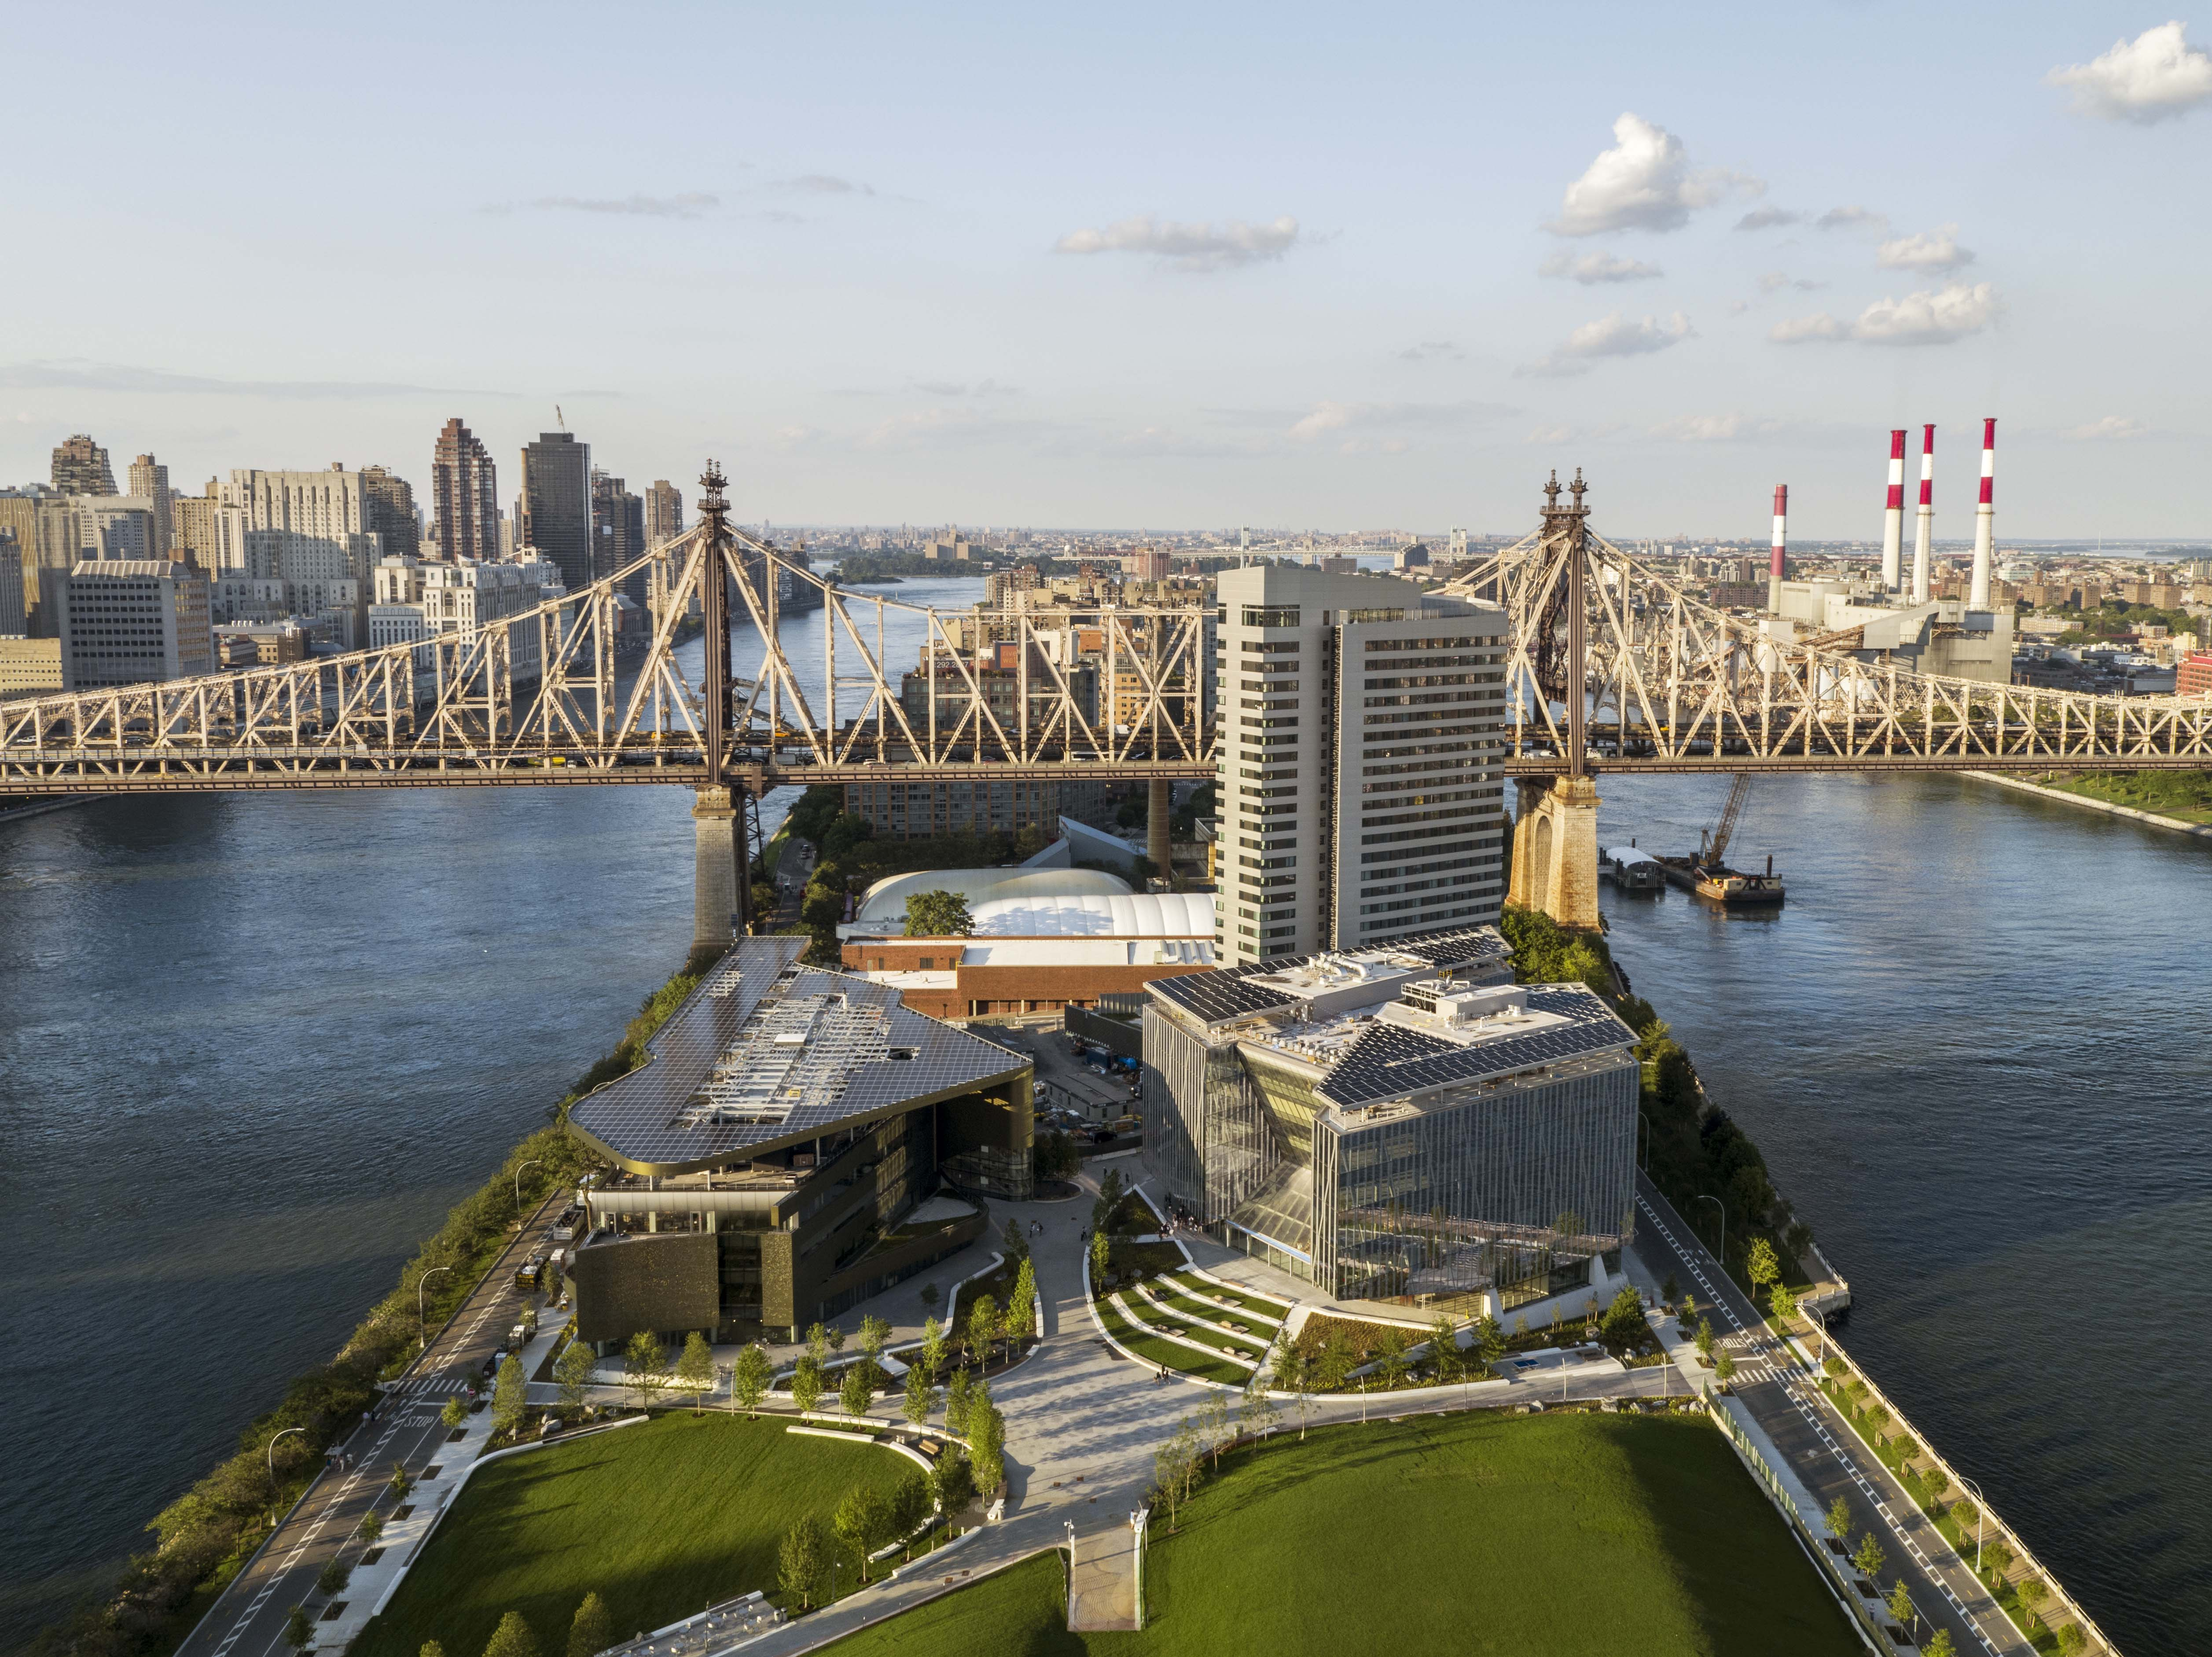 Arial shot of the Cornell Tech campus